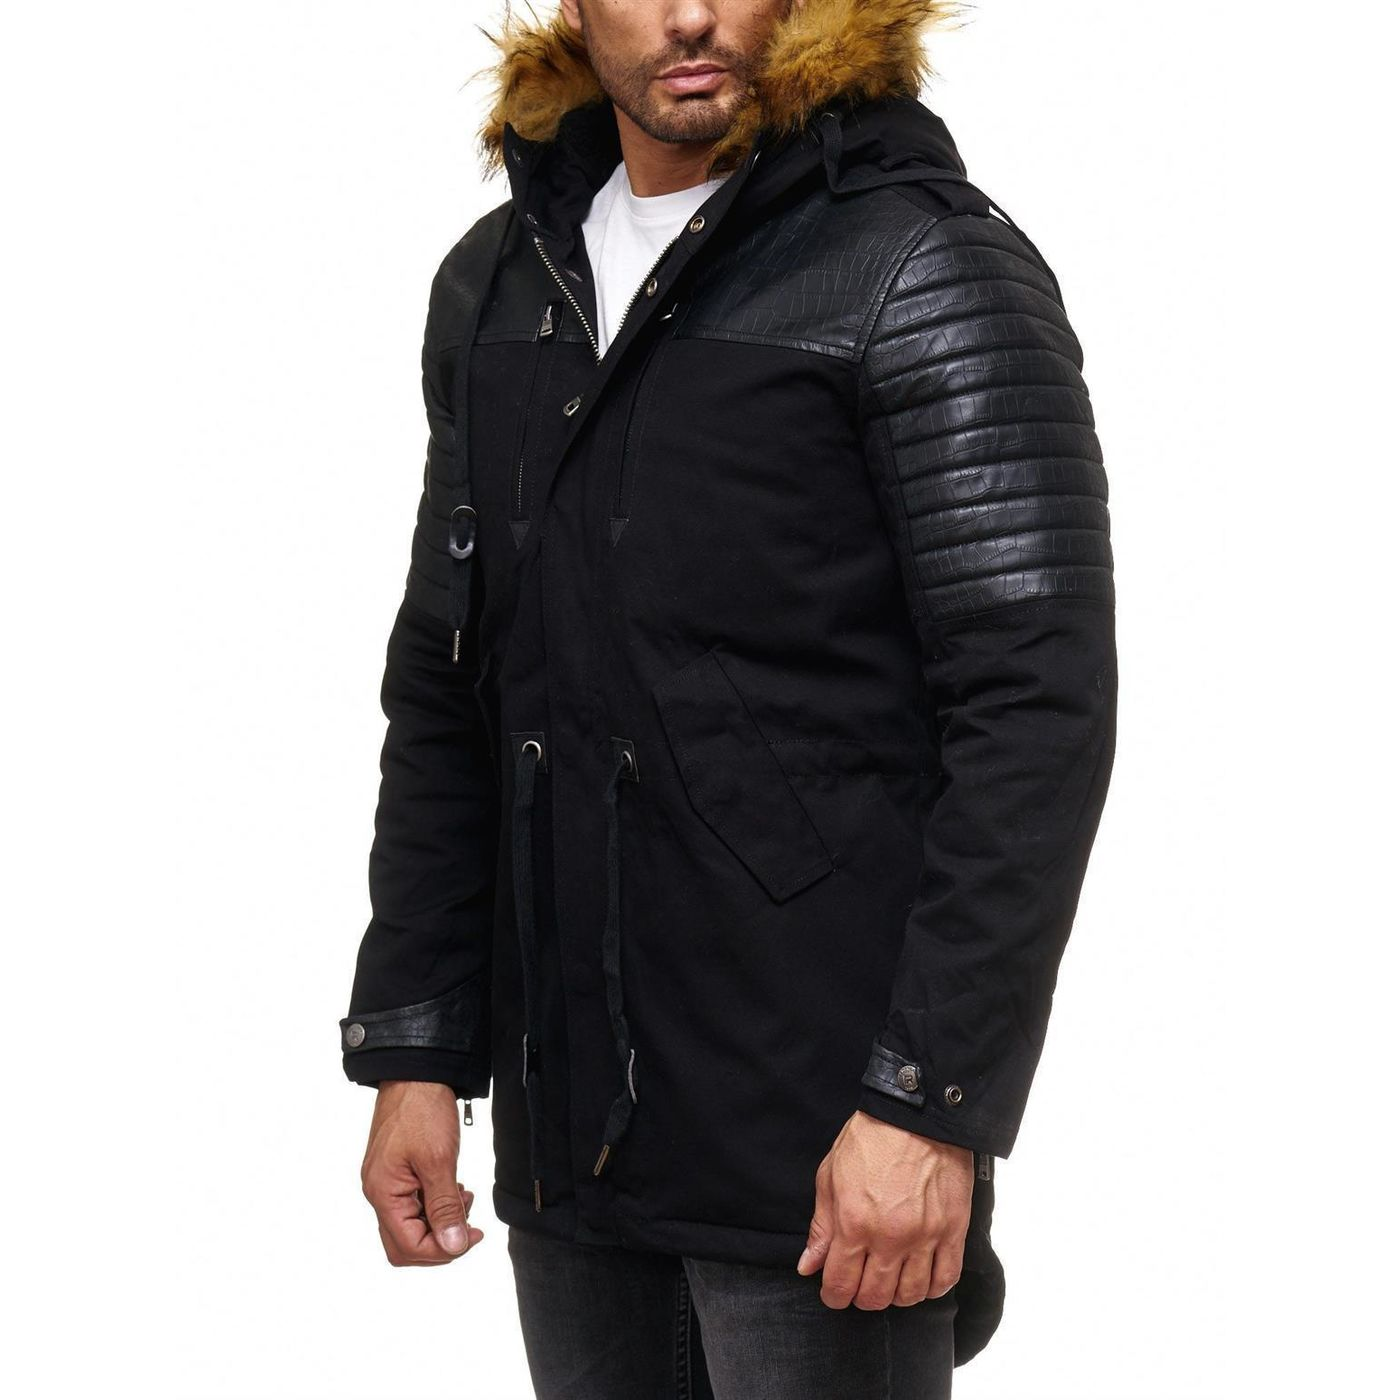 herren winterjacke lang carisma herren kurzmantel parka jacke winterjacke lang extra lang. Black Bedroom Furniture Sets. Home Design Ideas